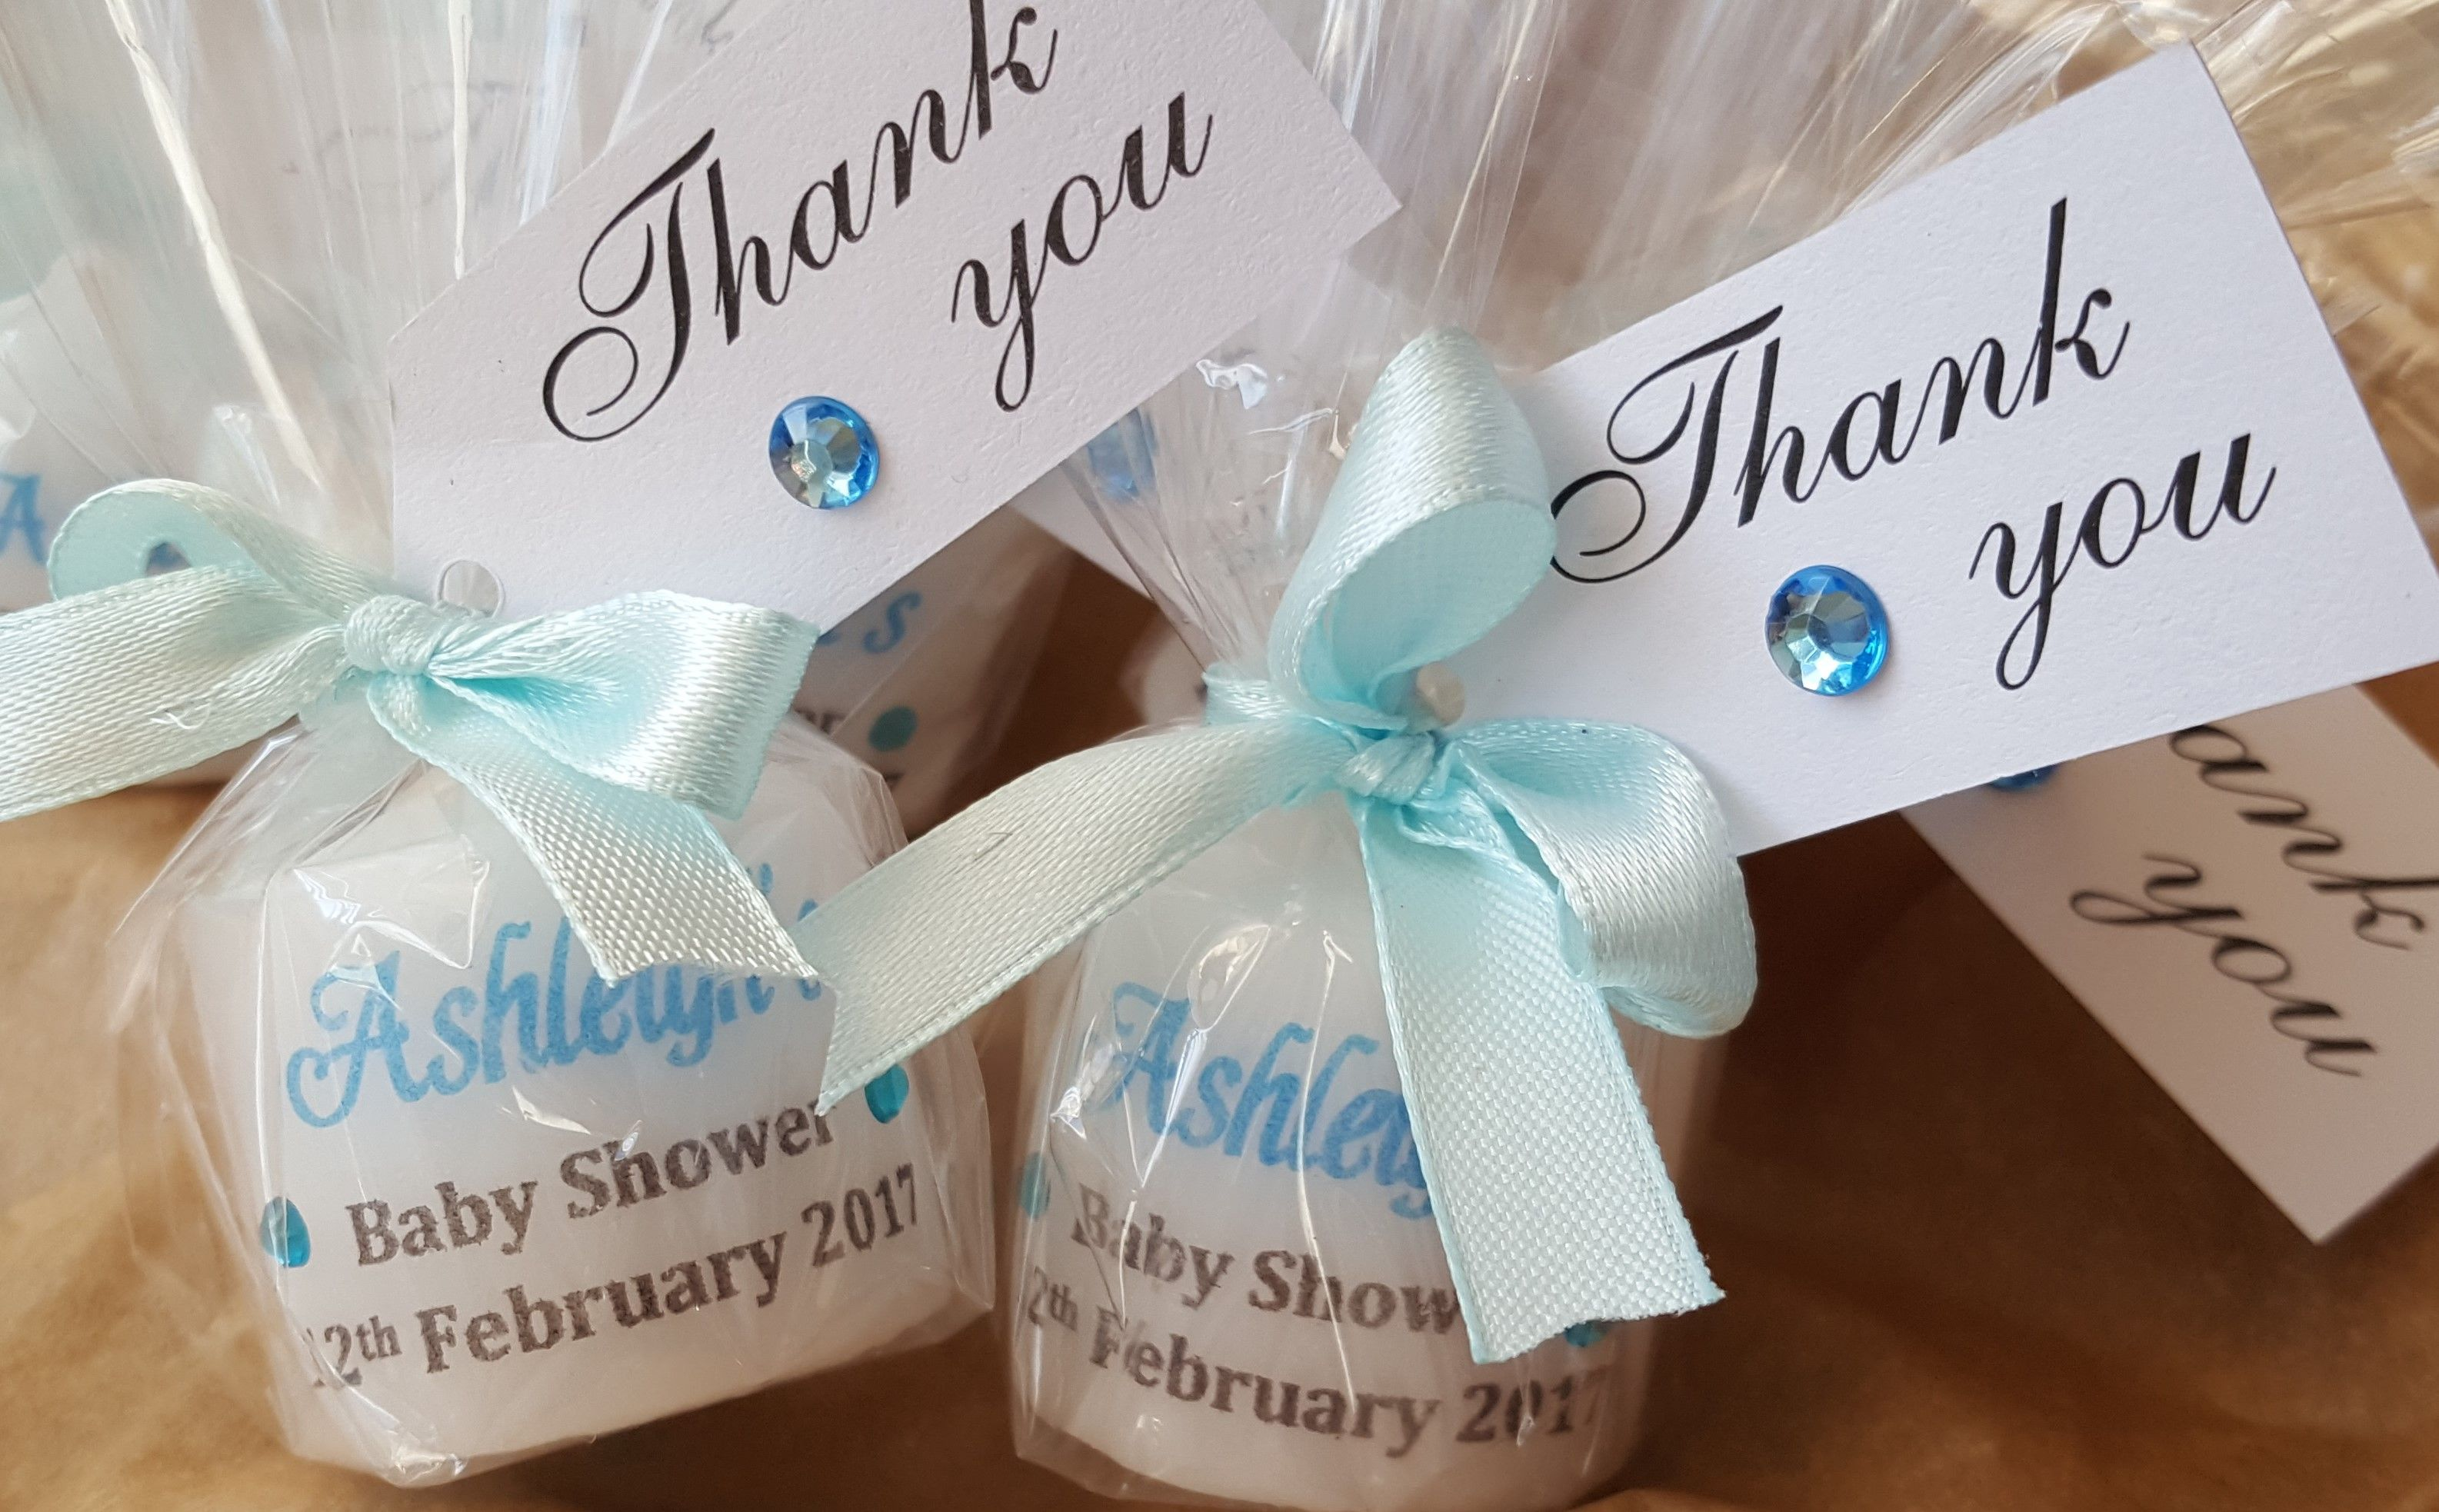 Baby Shower Gifts Wrapped In Clear ~ Personalised baby shower candle wrapped in clear cellophane and